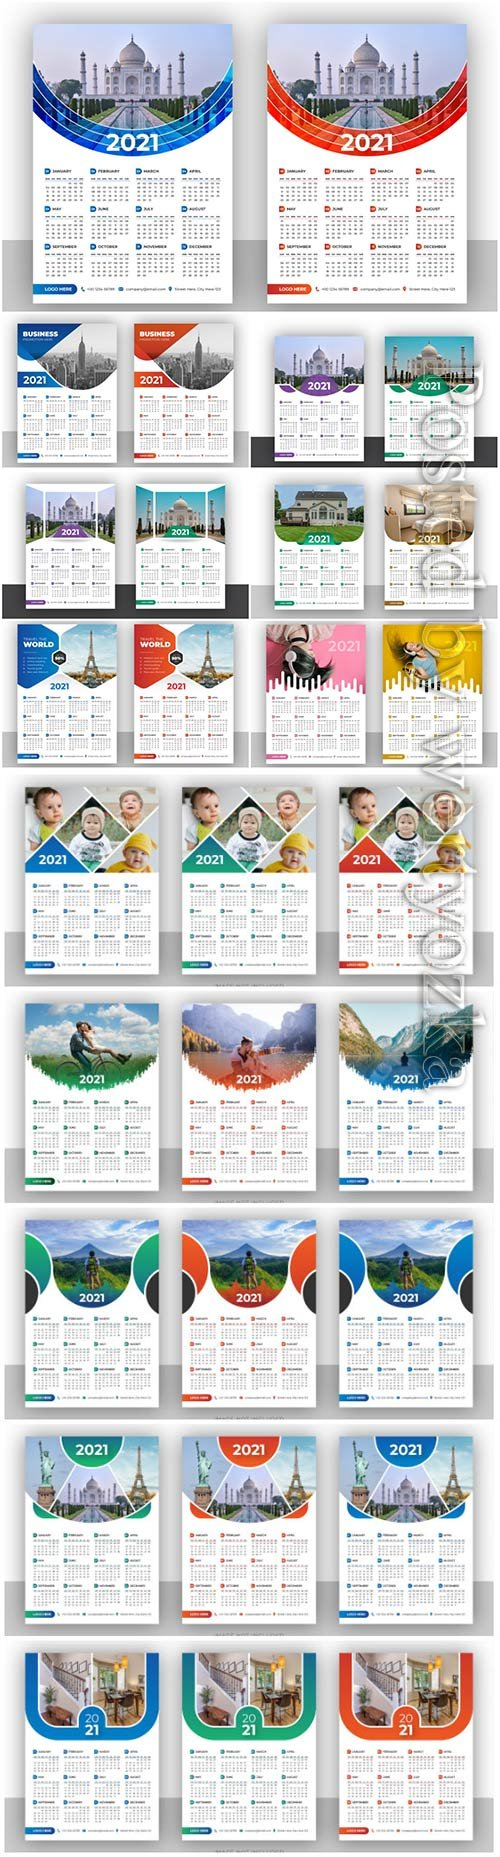 Calendar 2021 design vector template for new year